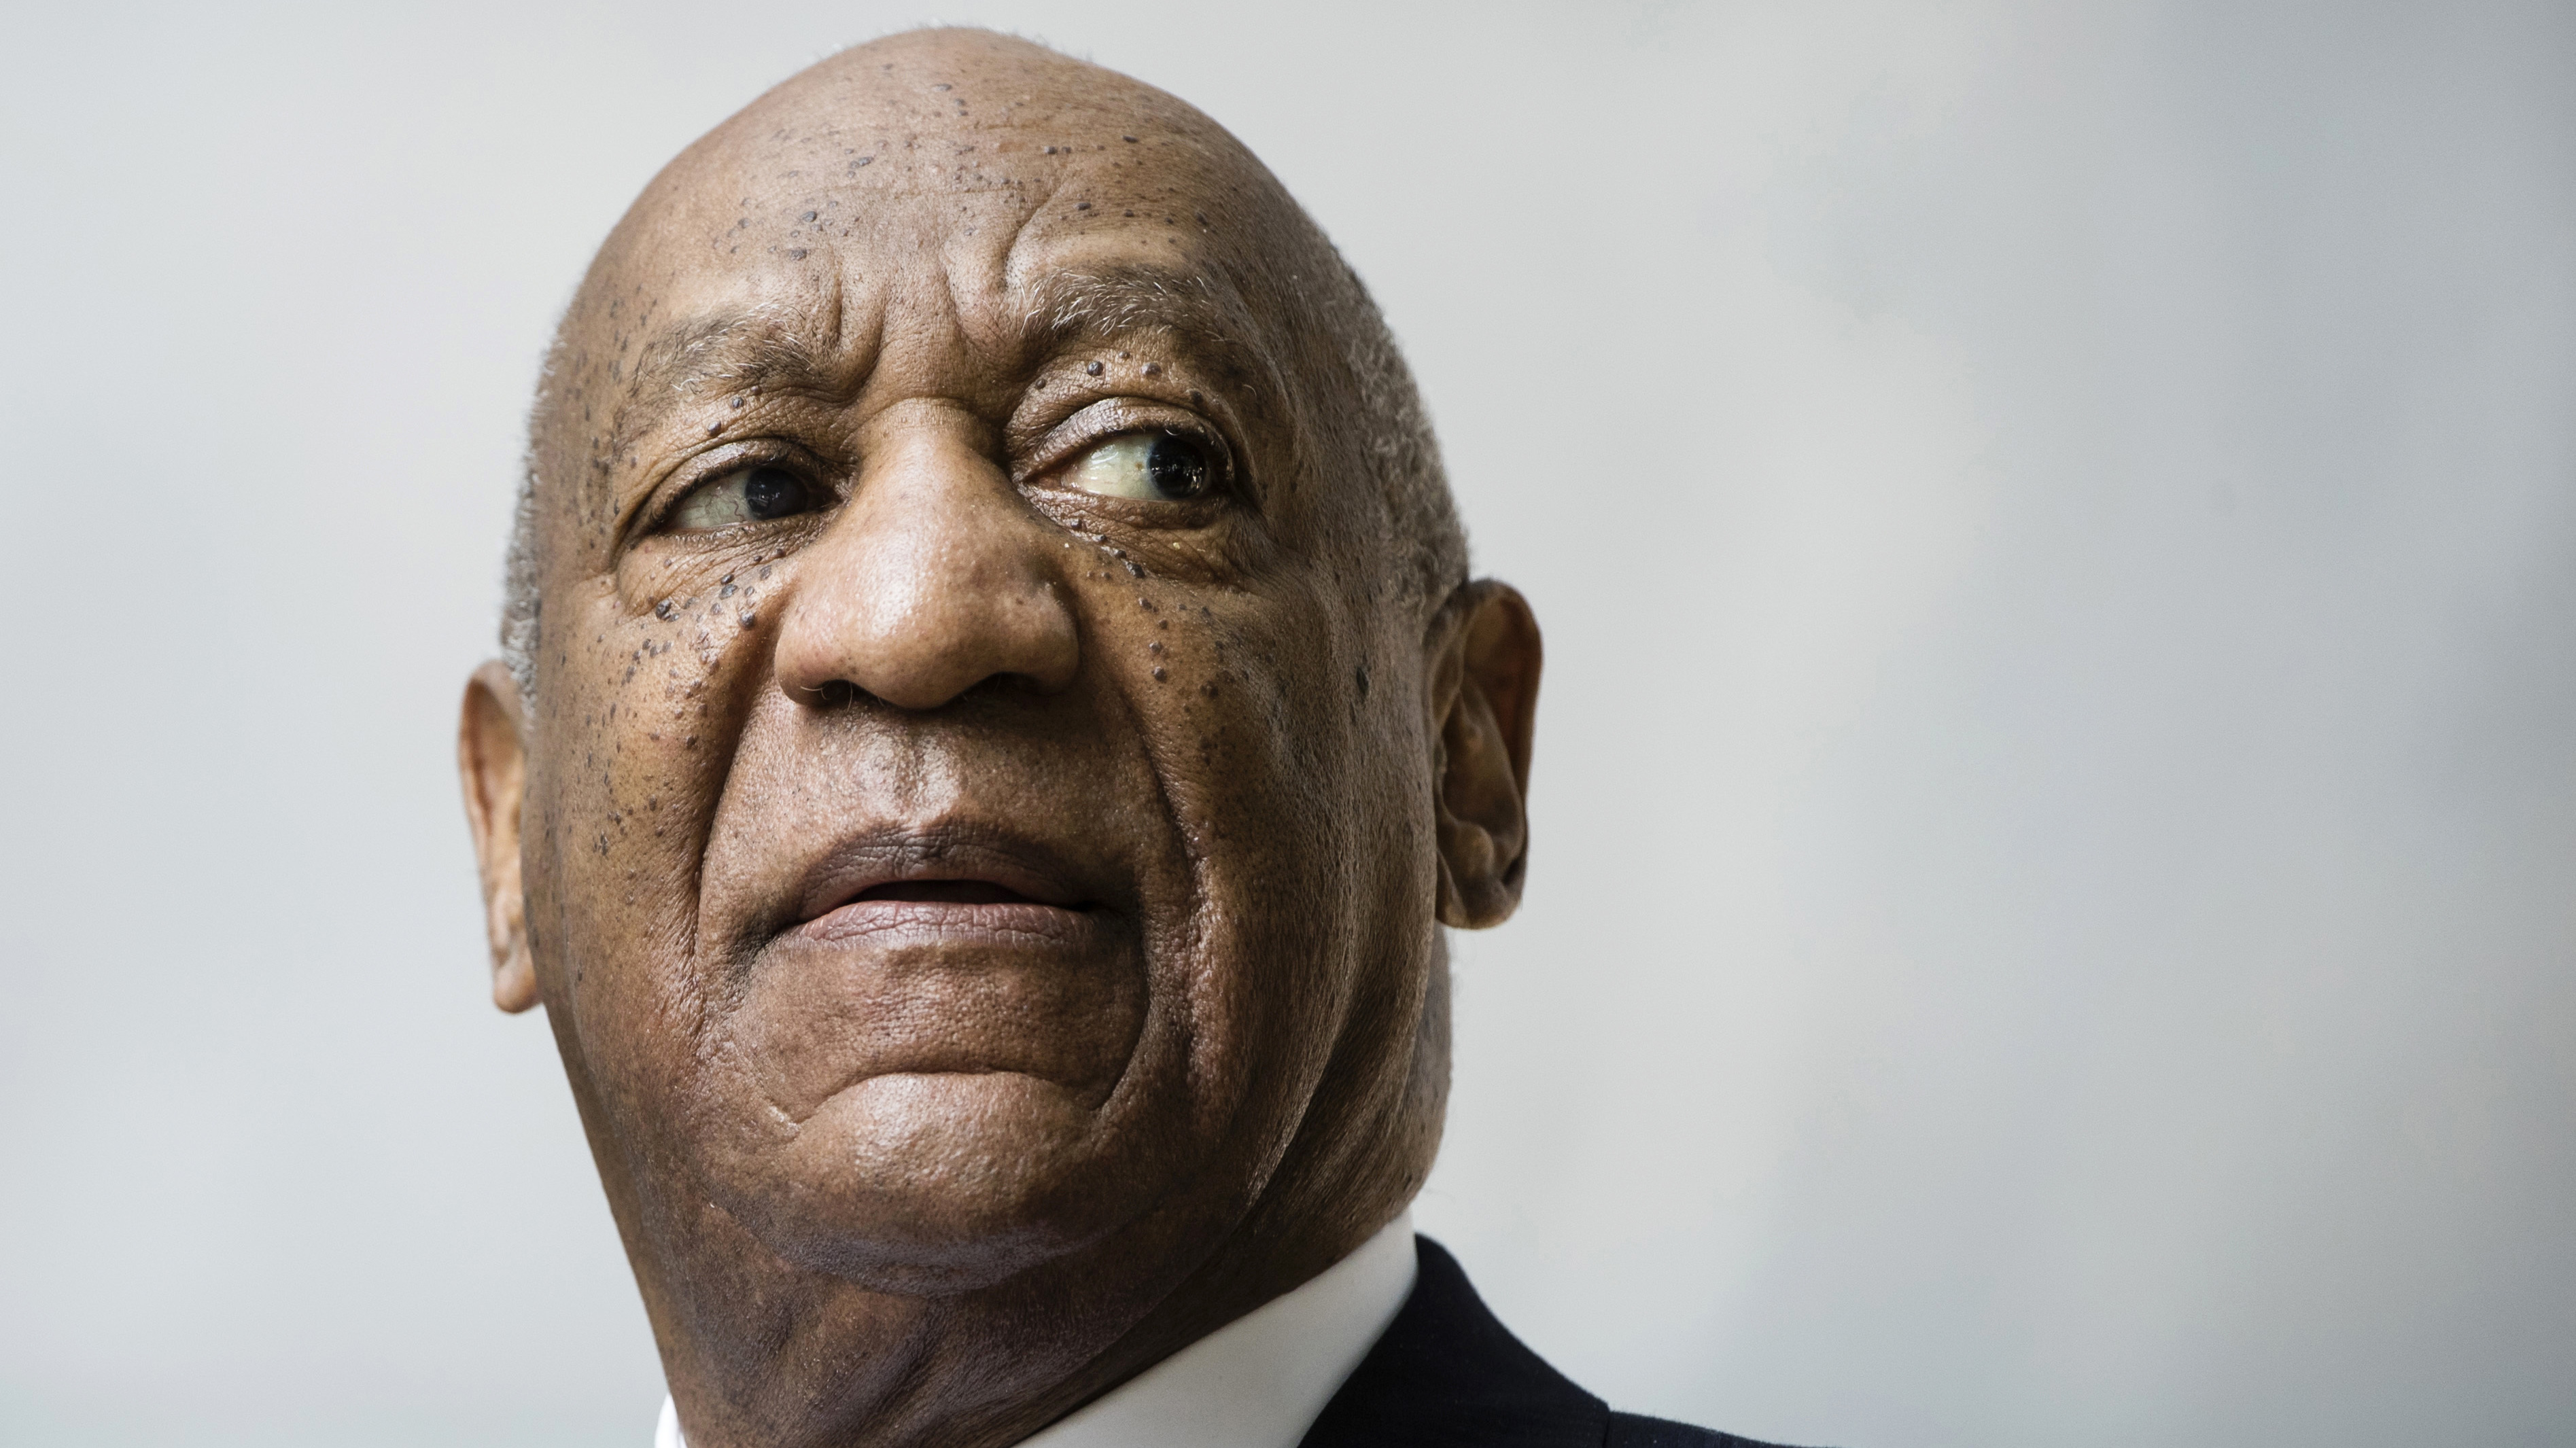 After decades of whispers, lawsuits, investigations and close calls - and a multitude of women who lost hope anyone would ever believe their word against that of America's Dad - Cosby could be headed to prison at age 80 for the remainder of his life.